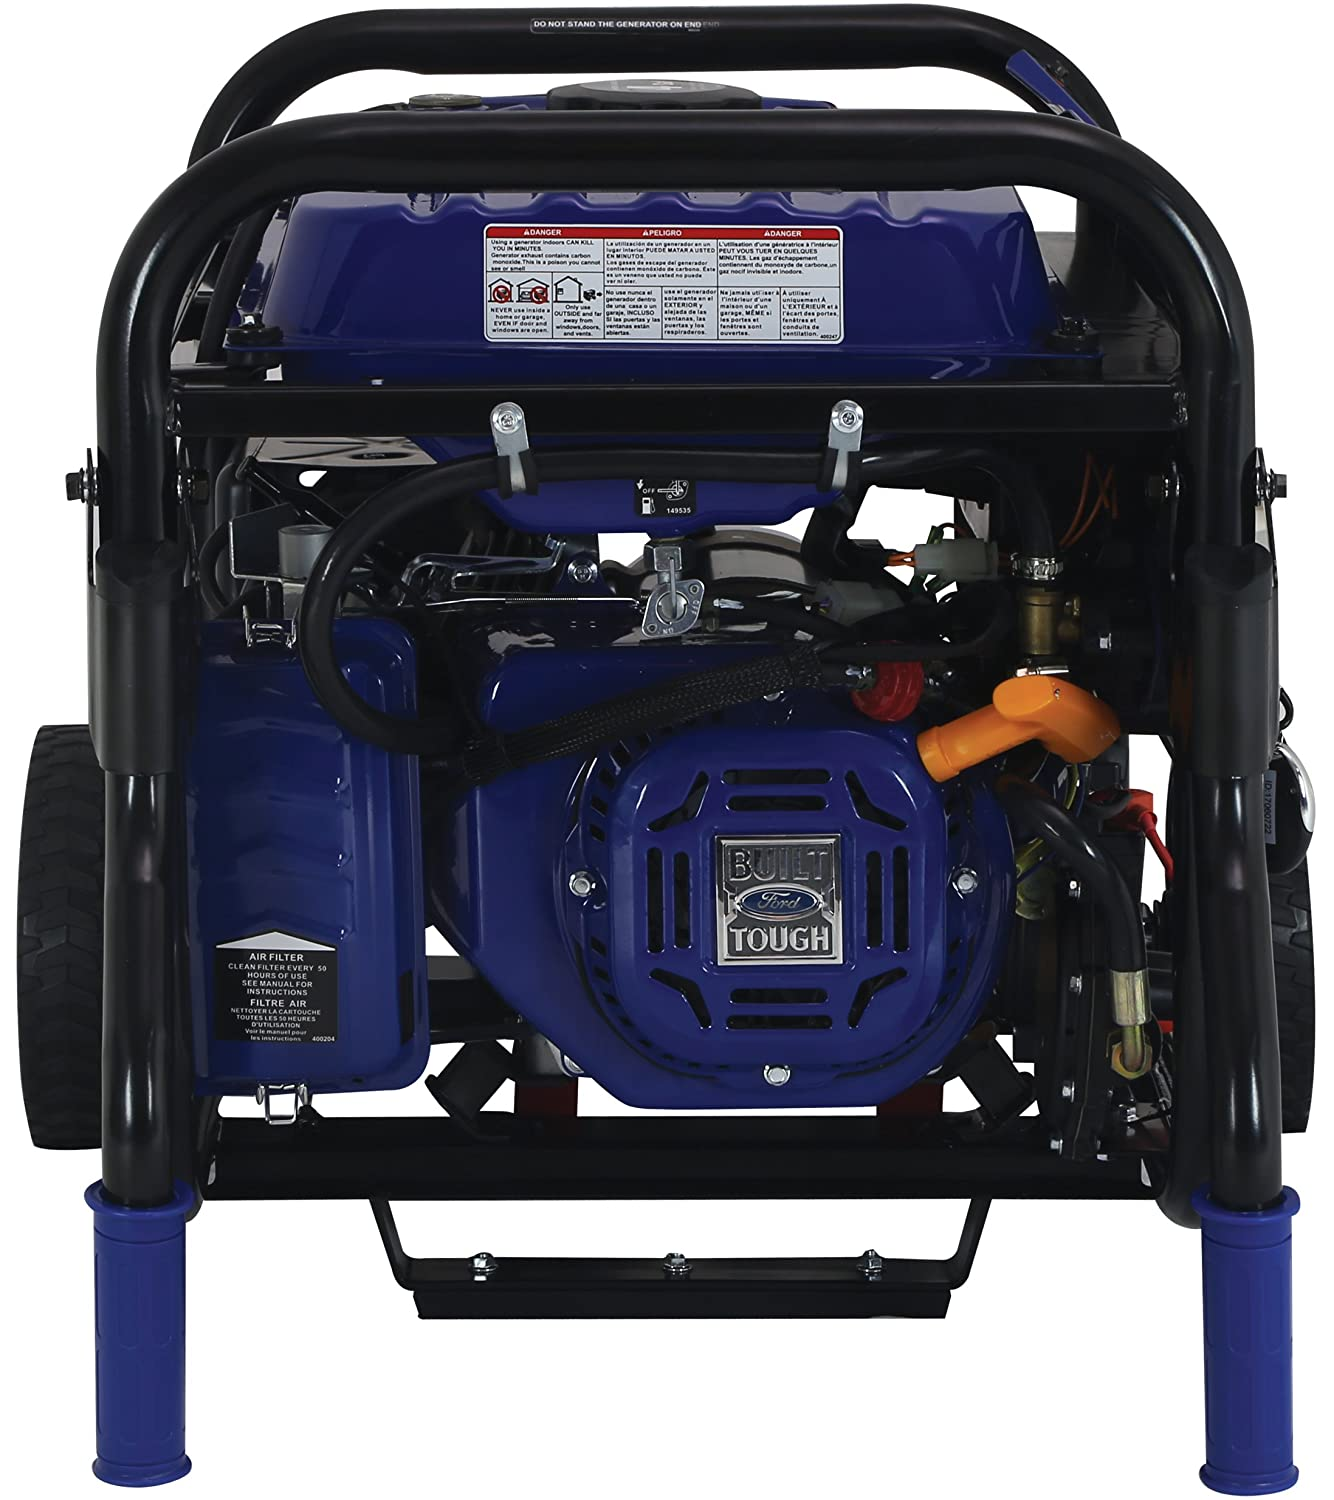 Ford 5 250w Dual Fuel Portable Generator With Switch Walker Mower Wiring Diagram For Charging Unit Go Technology And Remote Start Fg5250pbr Garden Outdoor